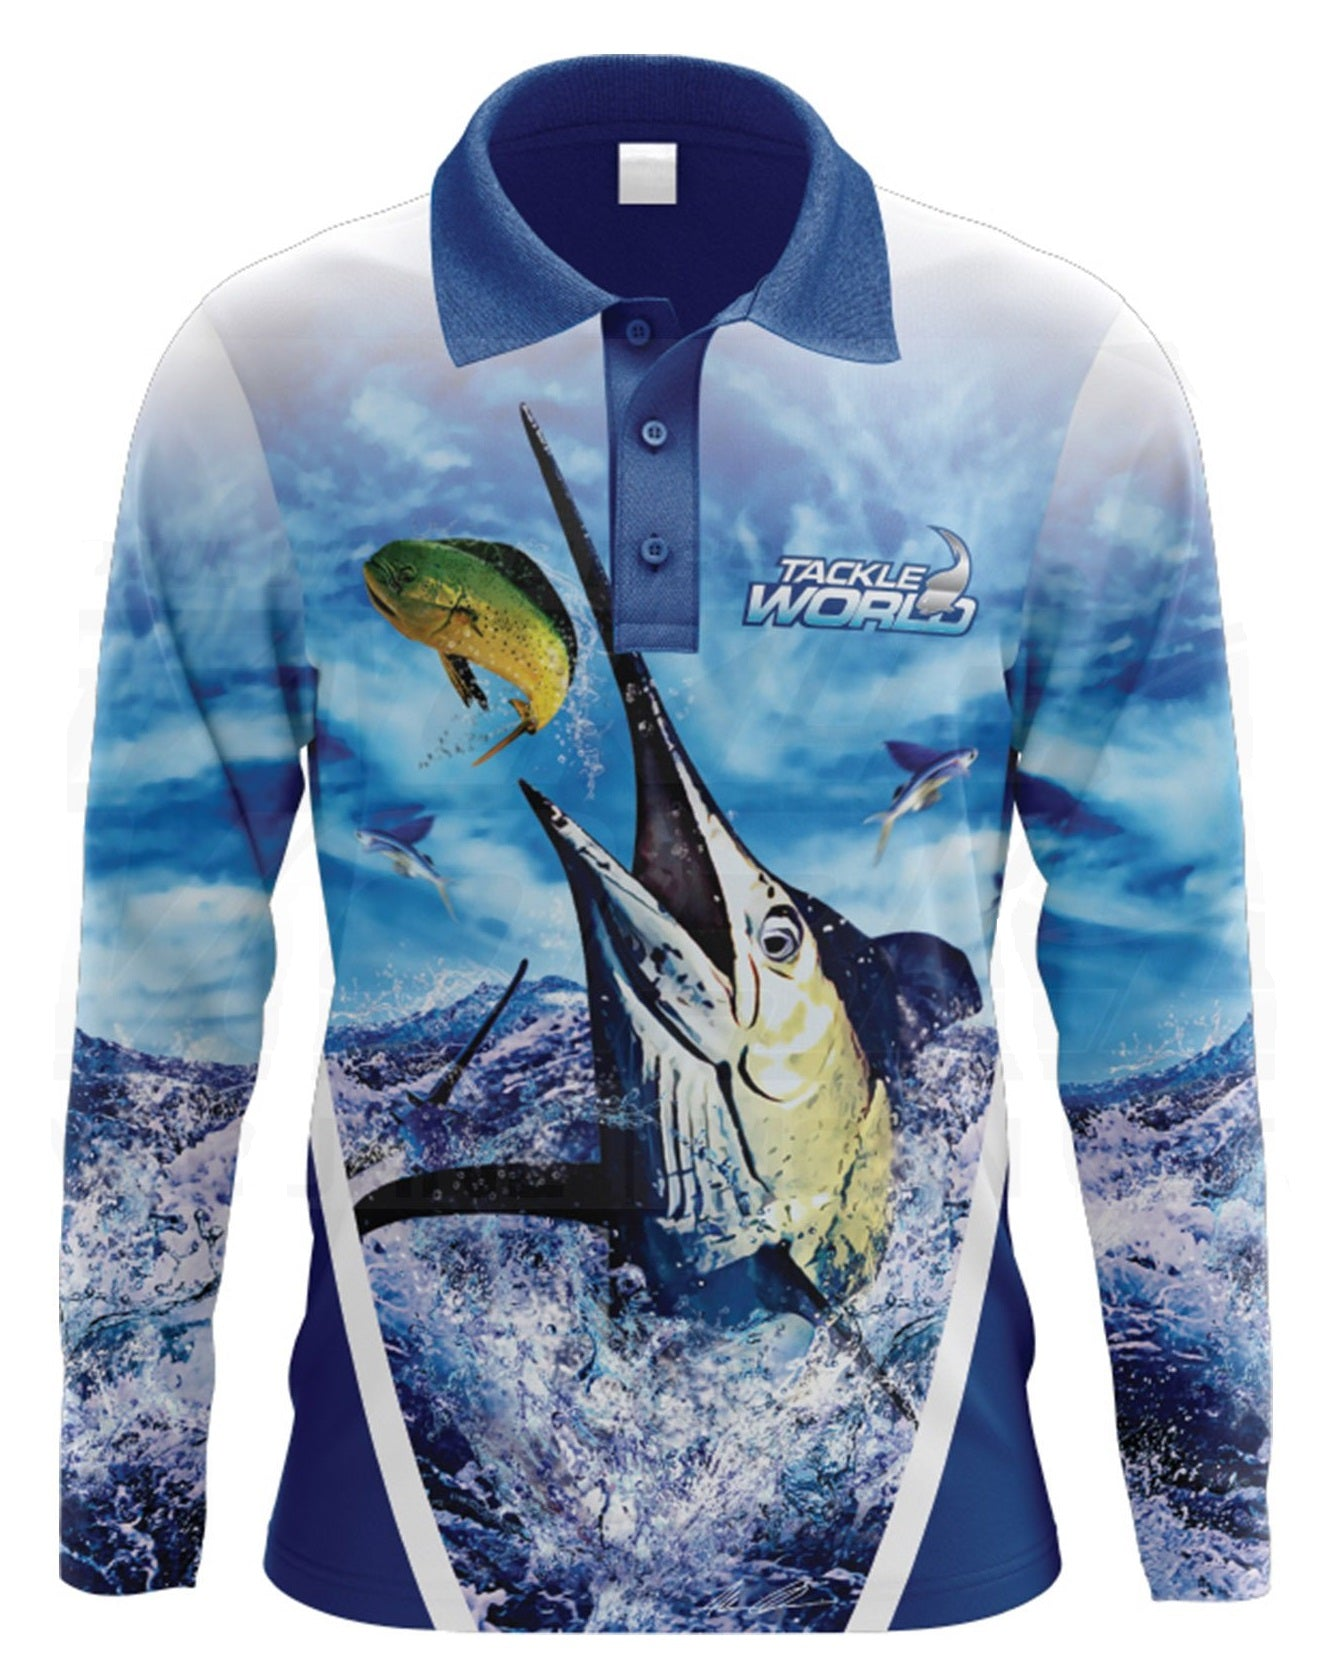 Tackle World Marlin Adult Long Sleeve Fishing Shirt Jersey